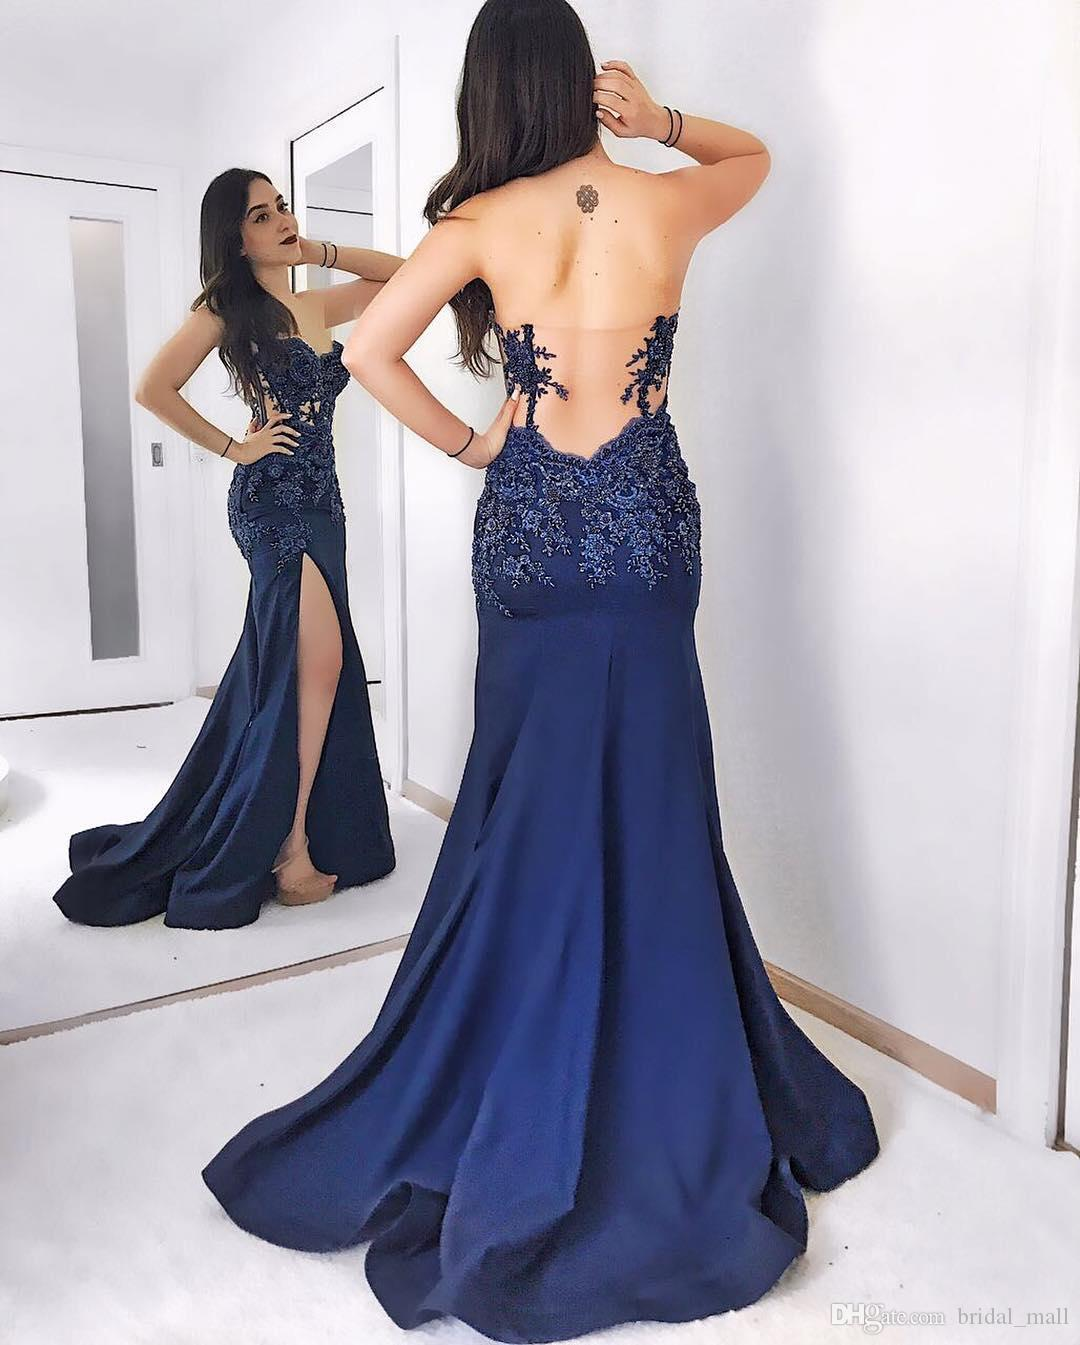 Elegant Navy Blue Prom Dress Sweetheart Backless Mermaid Evening ...